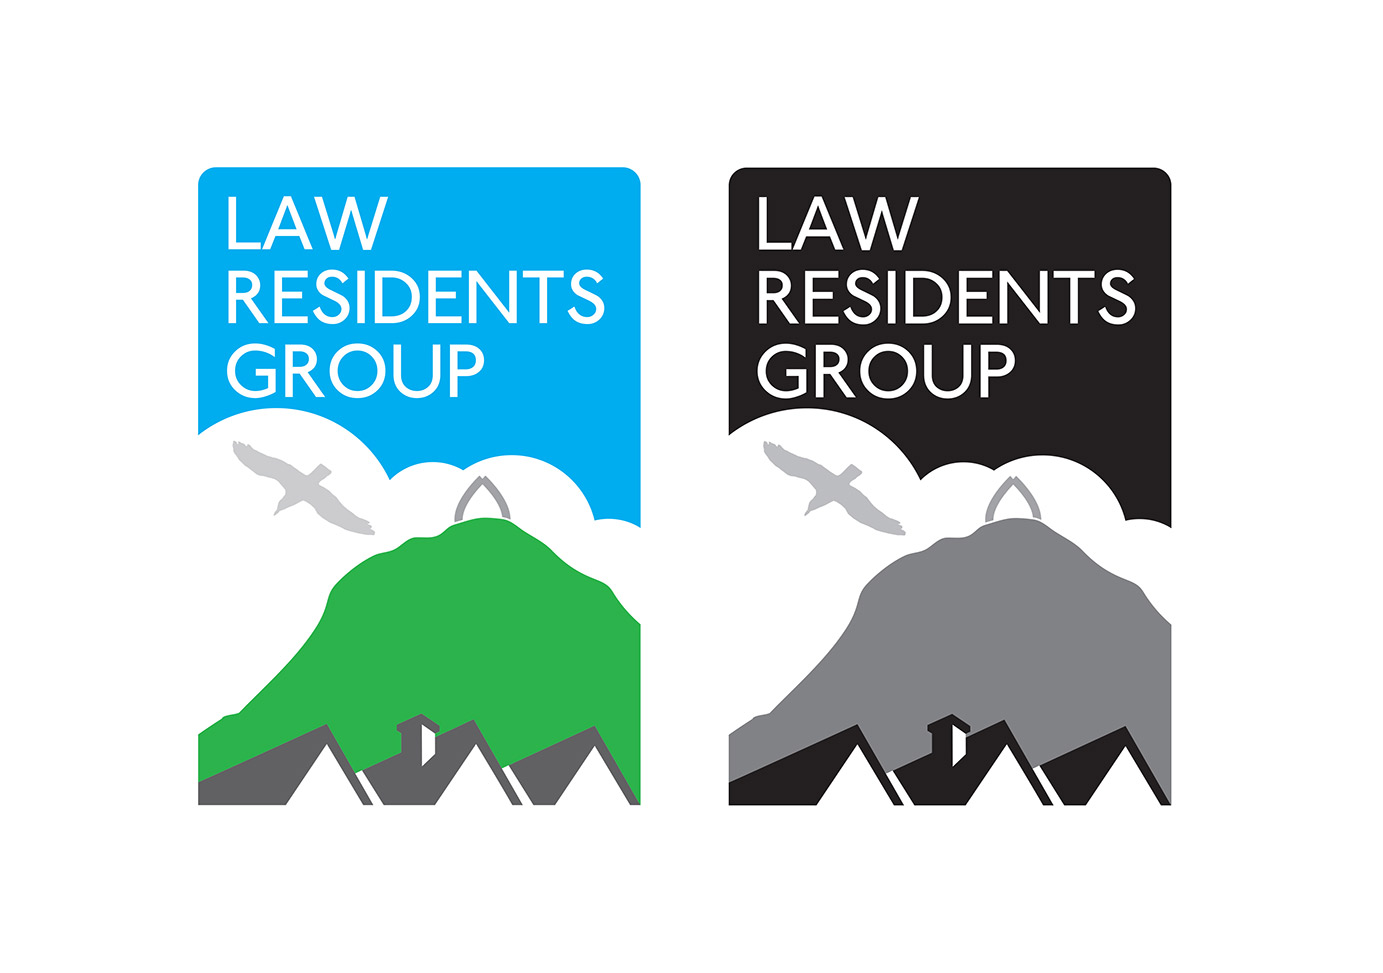 Law_residents_Group_logo_richardbudddesign_web.jpg